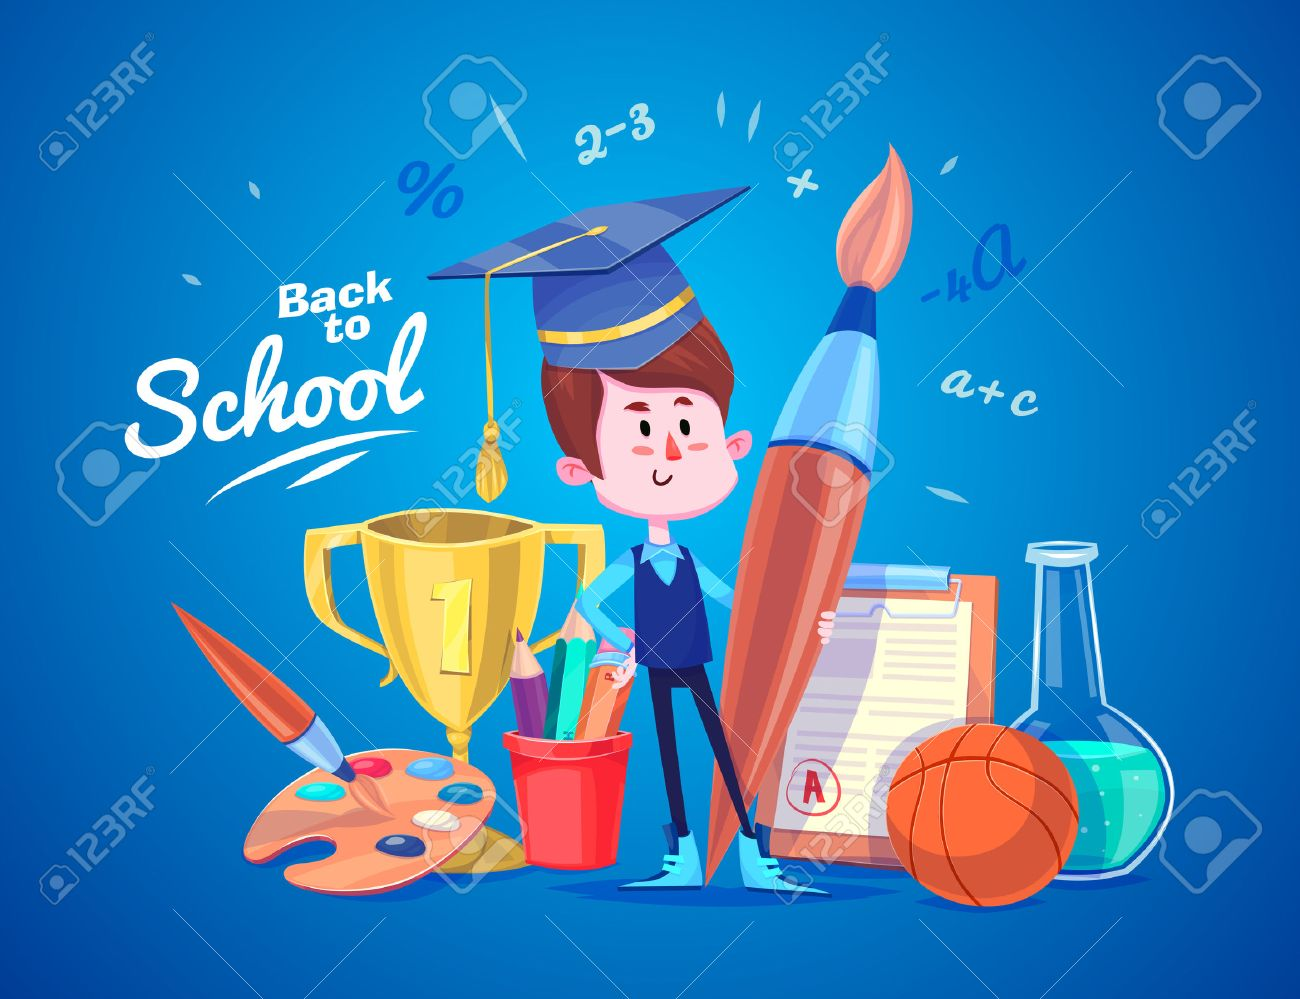 Cute School Children. School activities. Back to School isolated objects on blue background. Great illustration for a school books and more. - 43648408